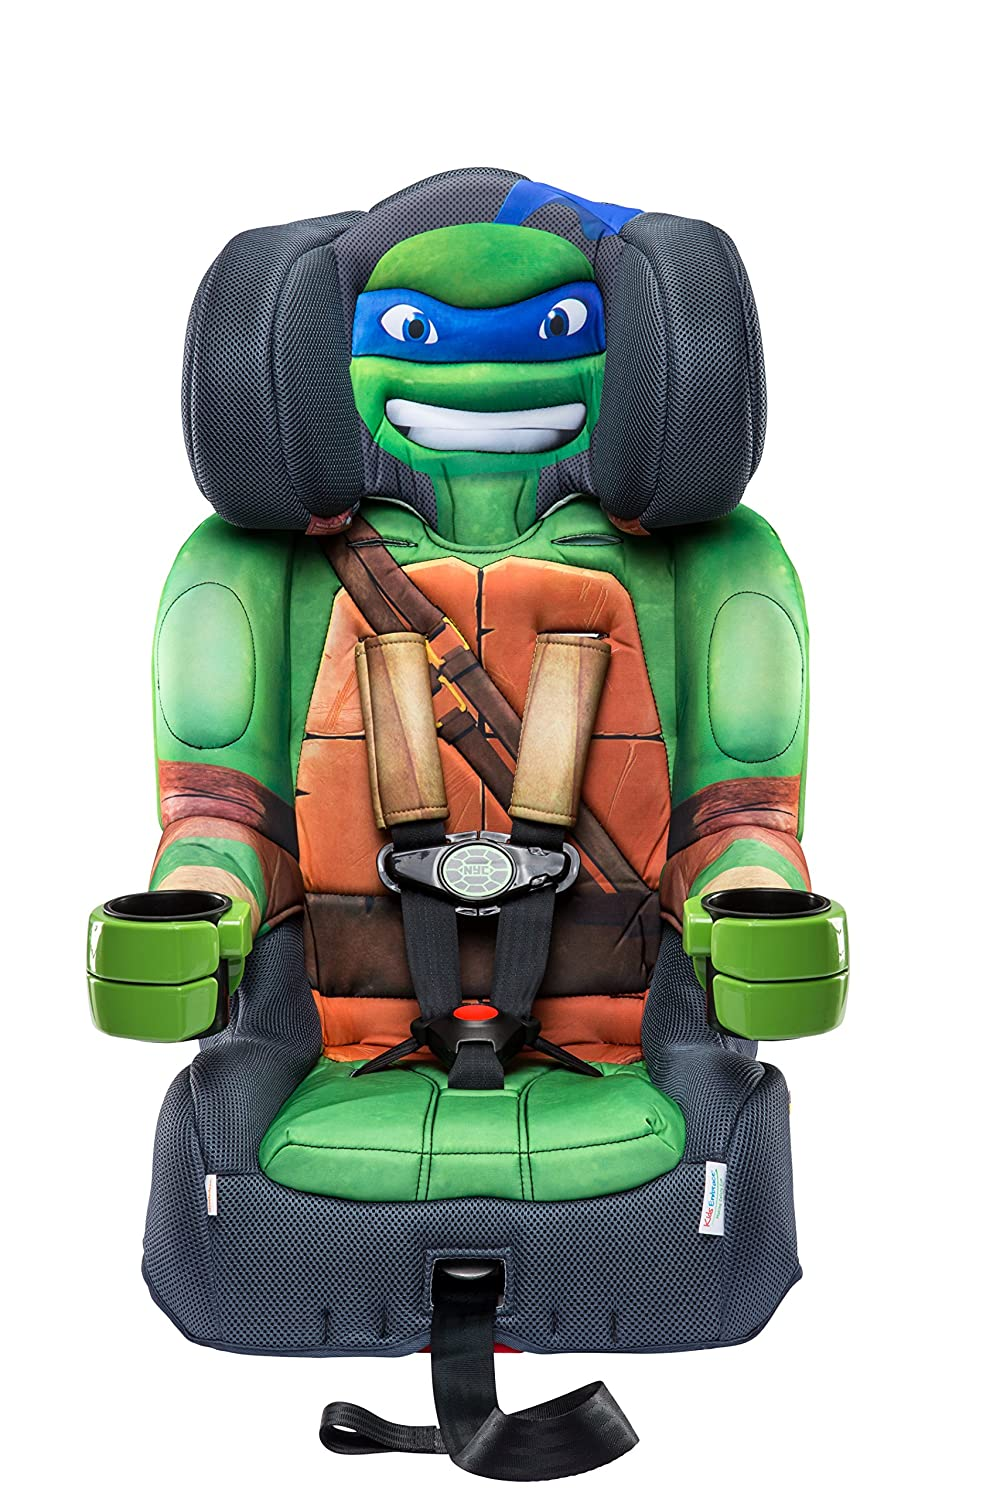 KidsEmbrace Nickelodeon Booster Car Seat, Teenage Mutant Ninja Turtles Leo Combination Seat, 5 Point Harness, Green 65500LEO